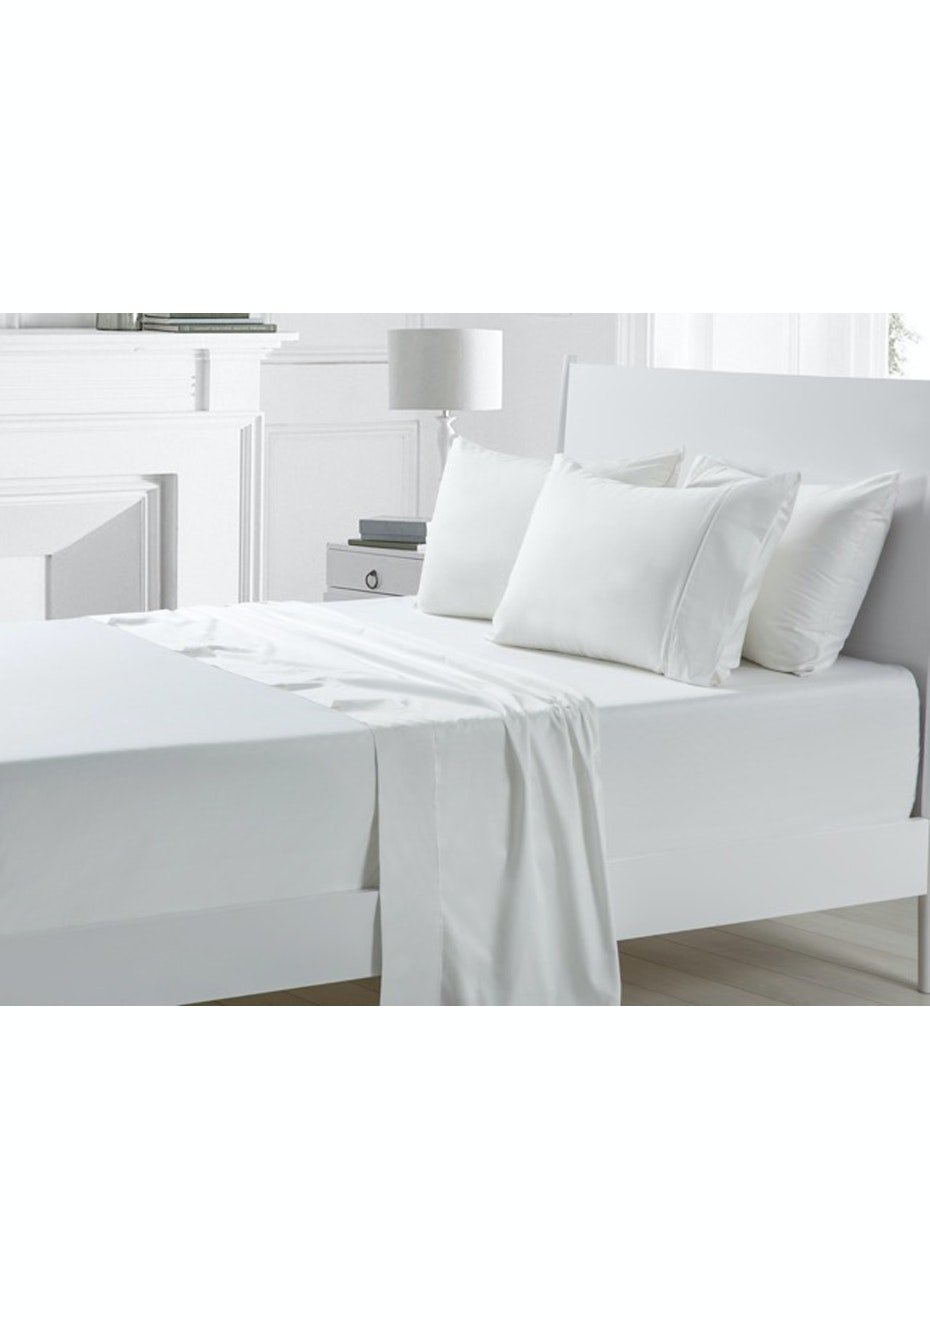 White 300TC Cotton Sateen Sheet Set - Queen Bed